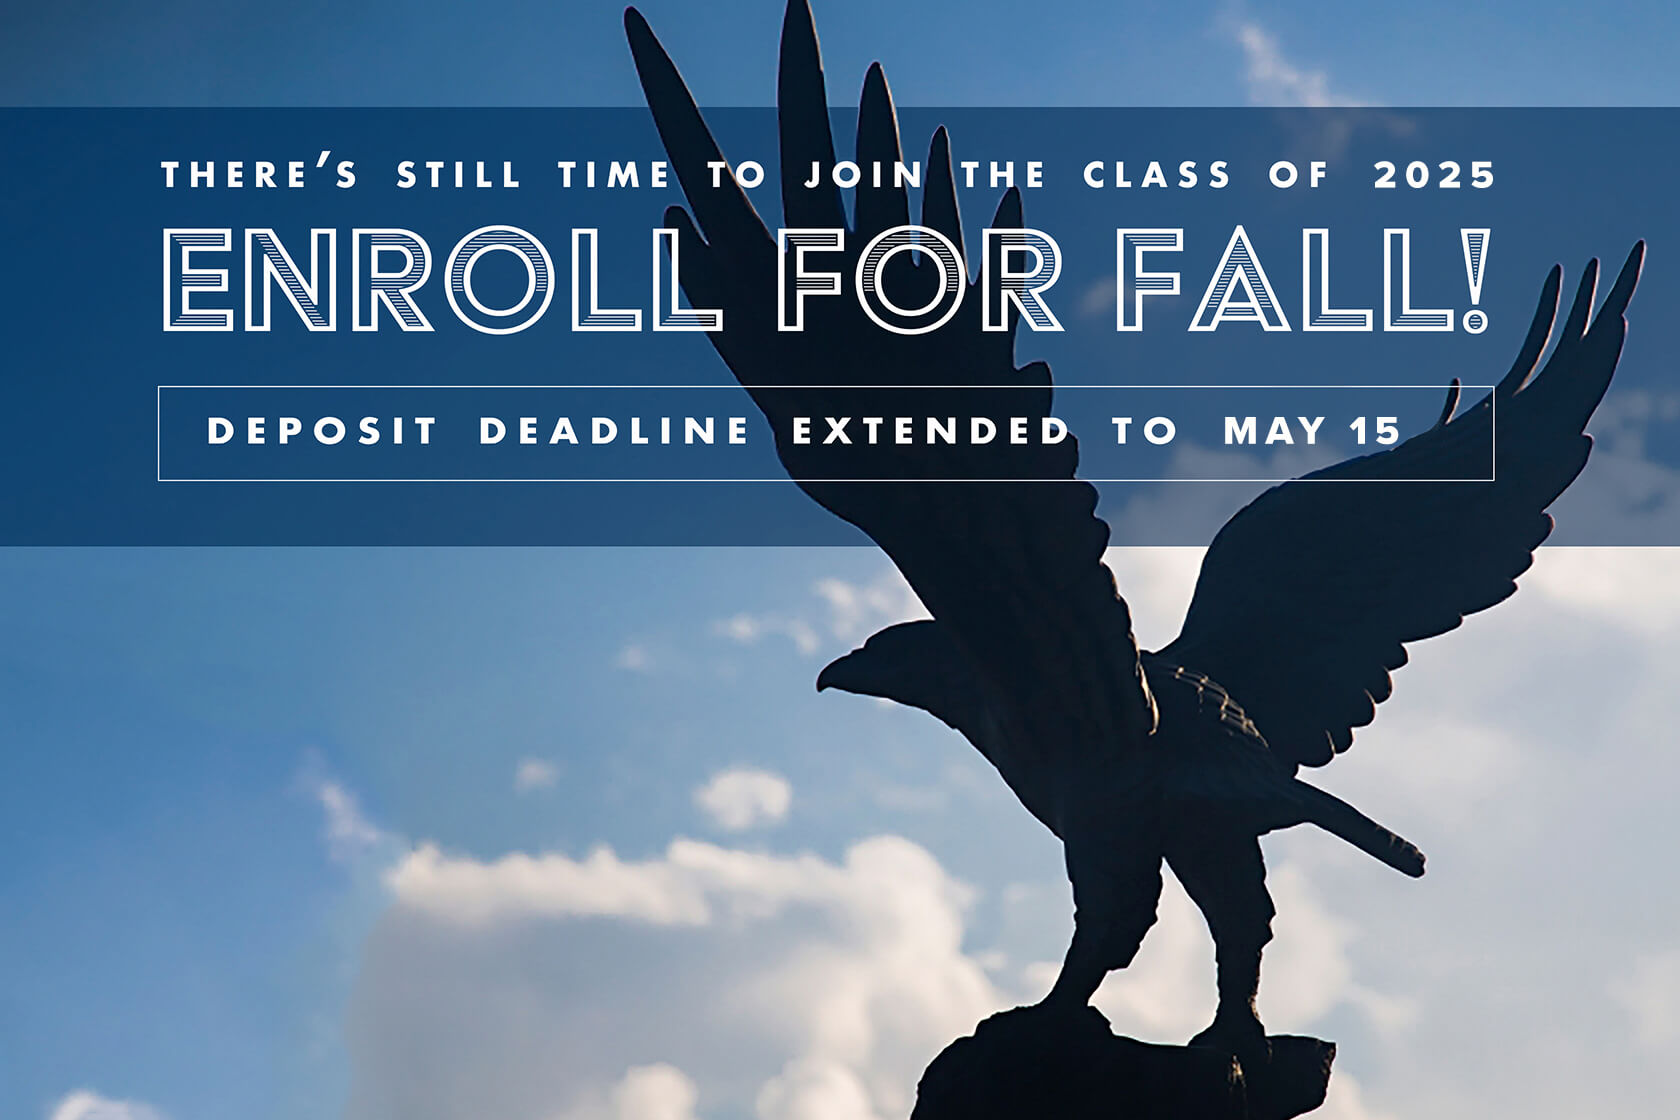 There's still time to join the class of 2025, Enroll for Fall! Deporist deadline extended to May 15